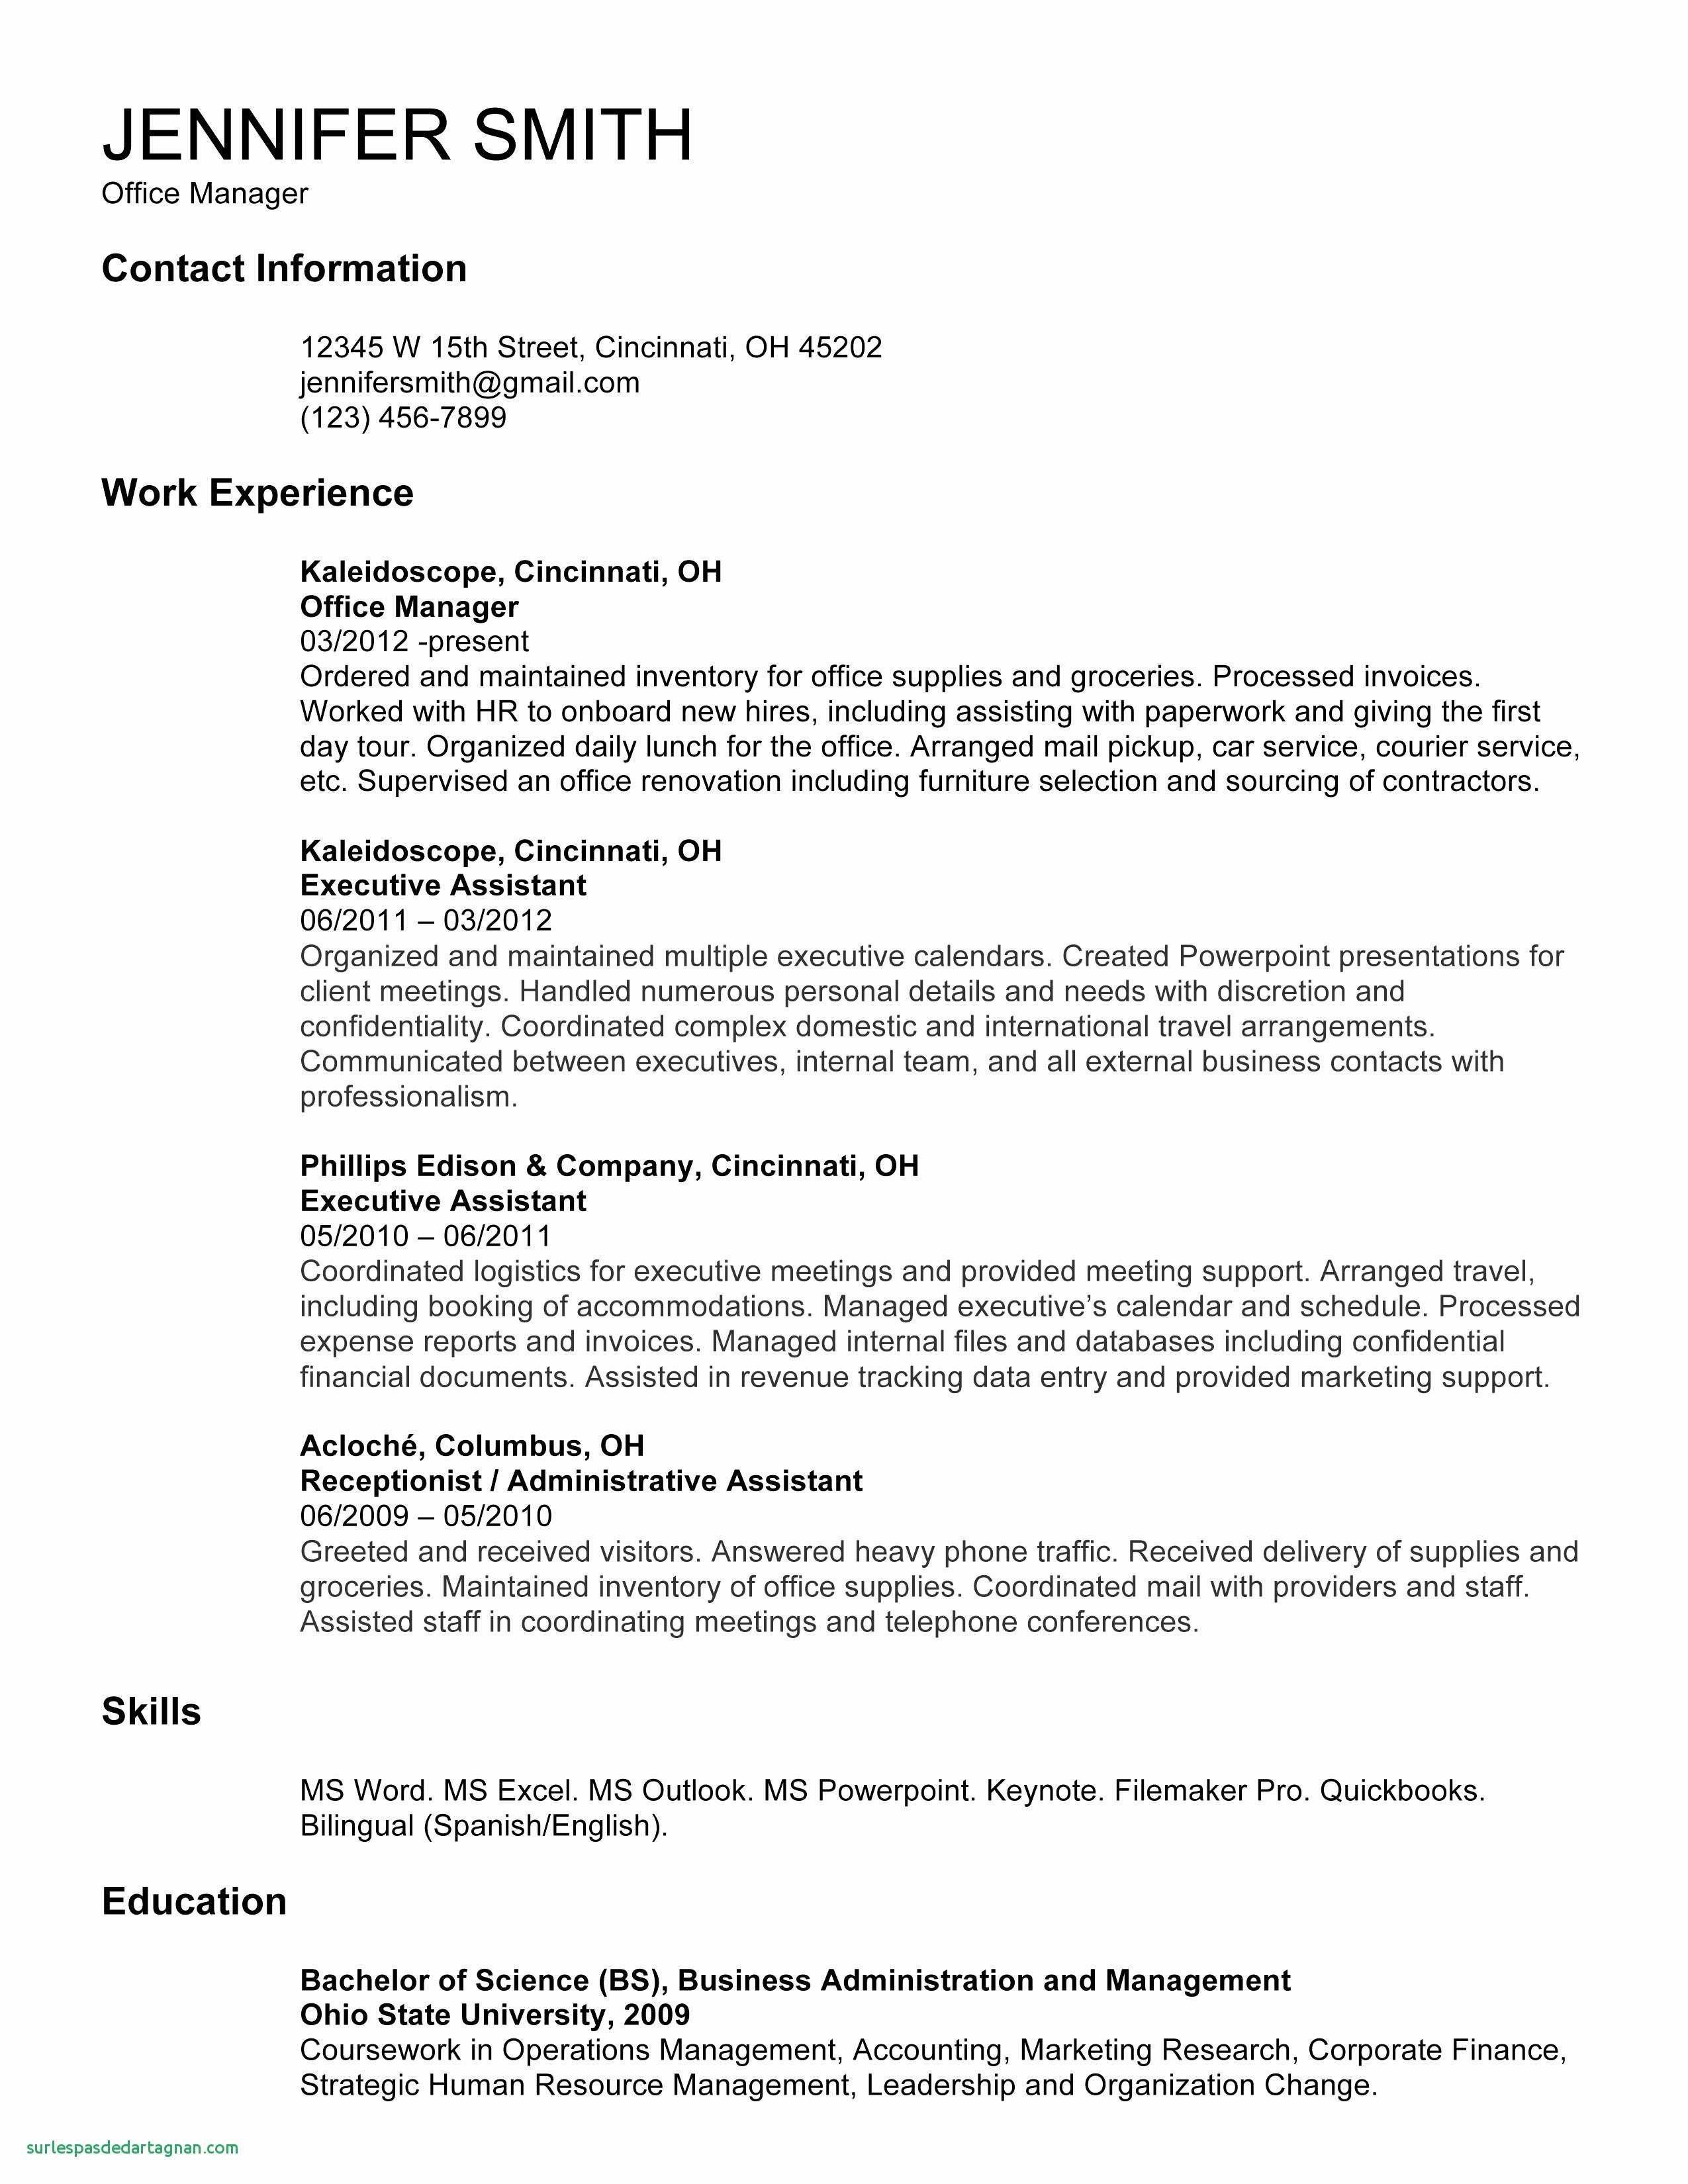 Resume Template In Spanish - Resume Template Download Free Unique ¢Ë†Å¡ Resume Template Download